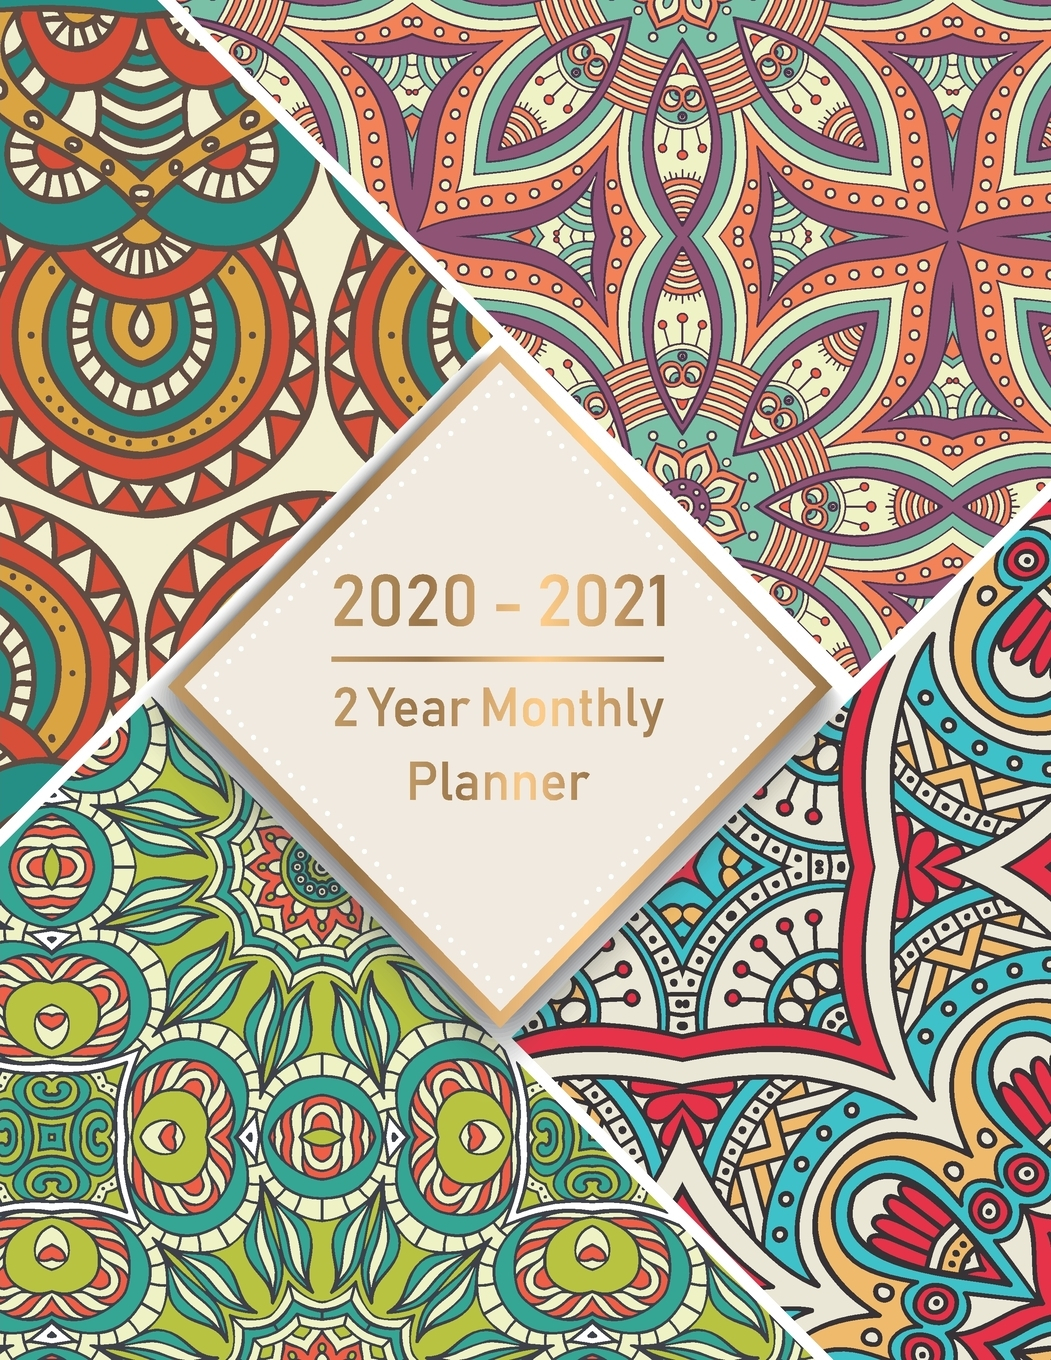 2020-2021 Monthly Planner: 2 Year Monthly Planner 2020-2021: Monthly  Schedule Organizer, Agenda Planner For The Next Two Years, 24 Months  Calendar, intended for 2021-2021 Monthly Planner: 2 Years